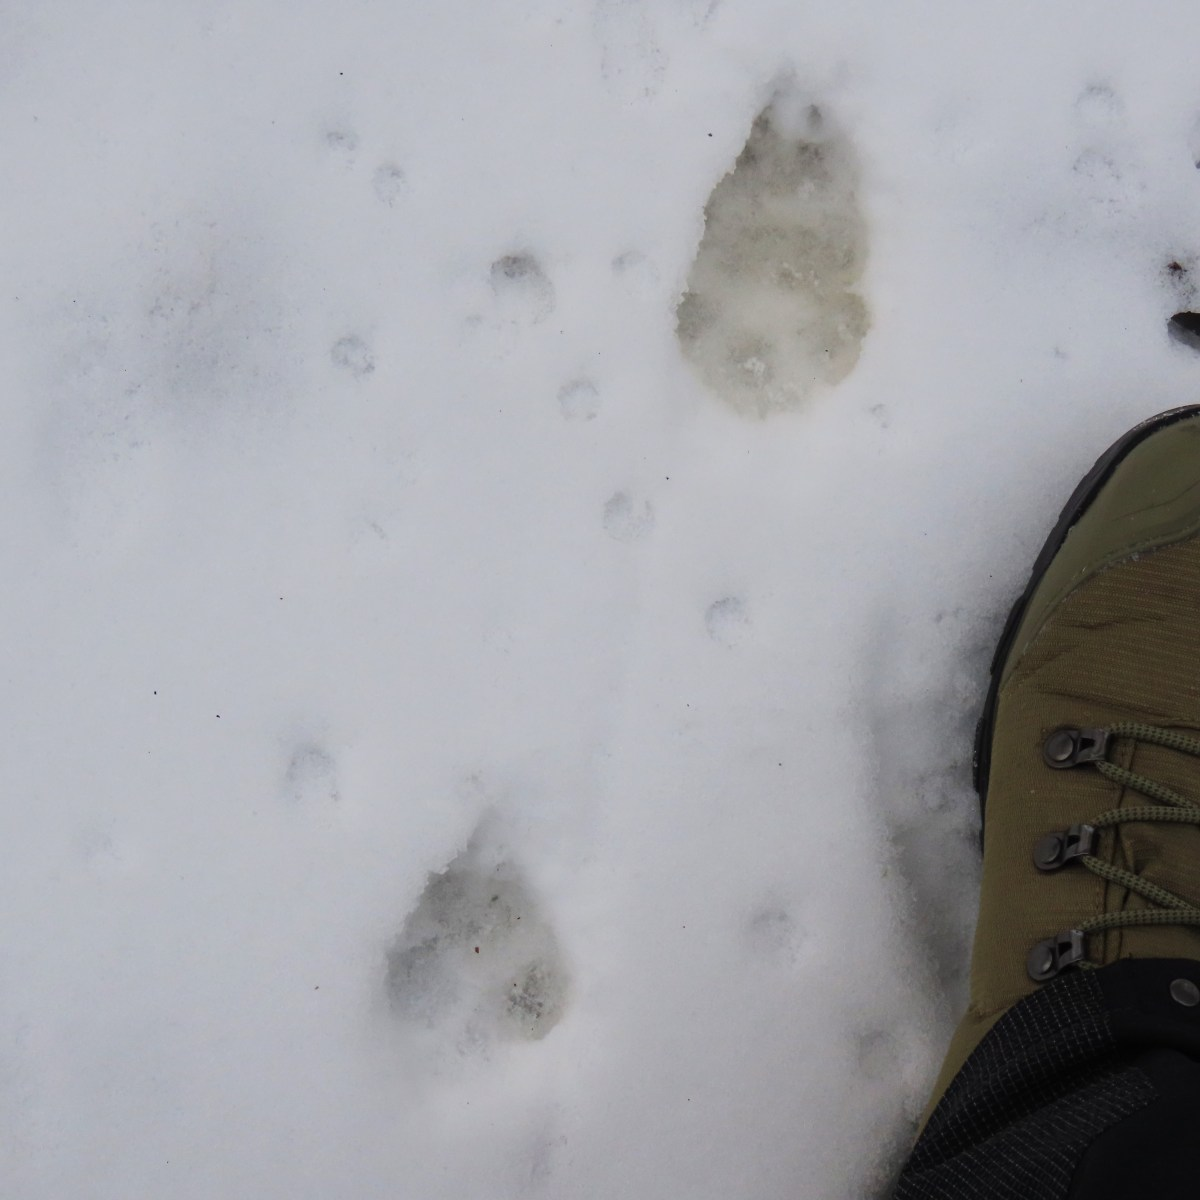 Coyote tracks in the snow next to a boot to demonstrate size